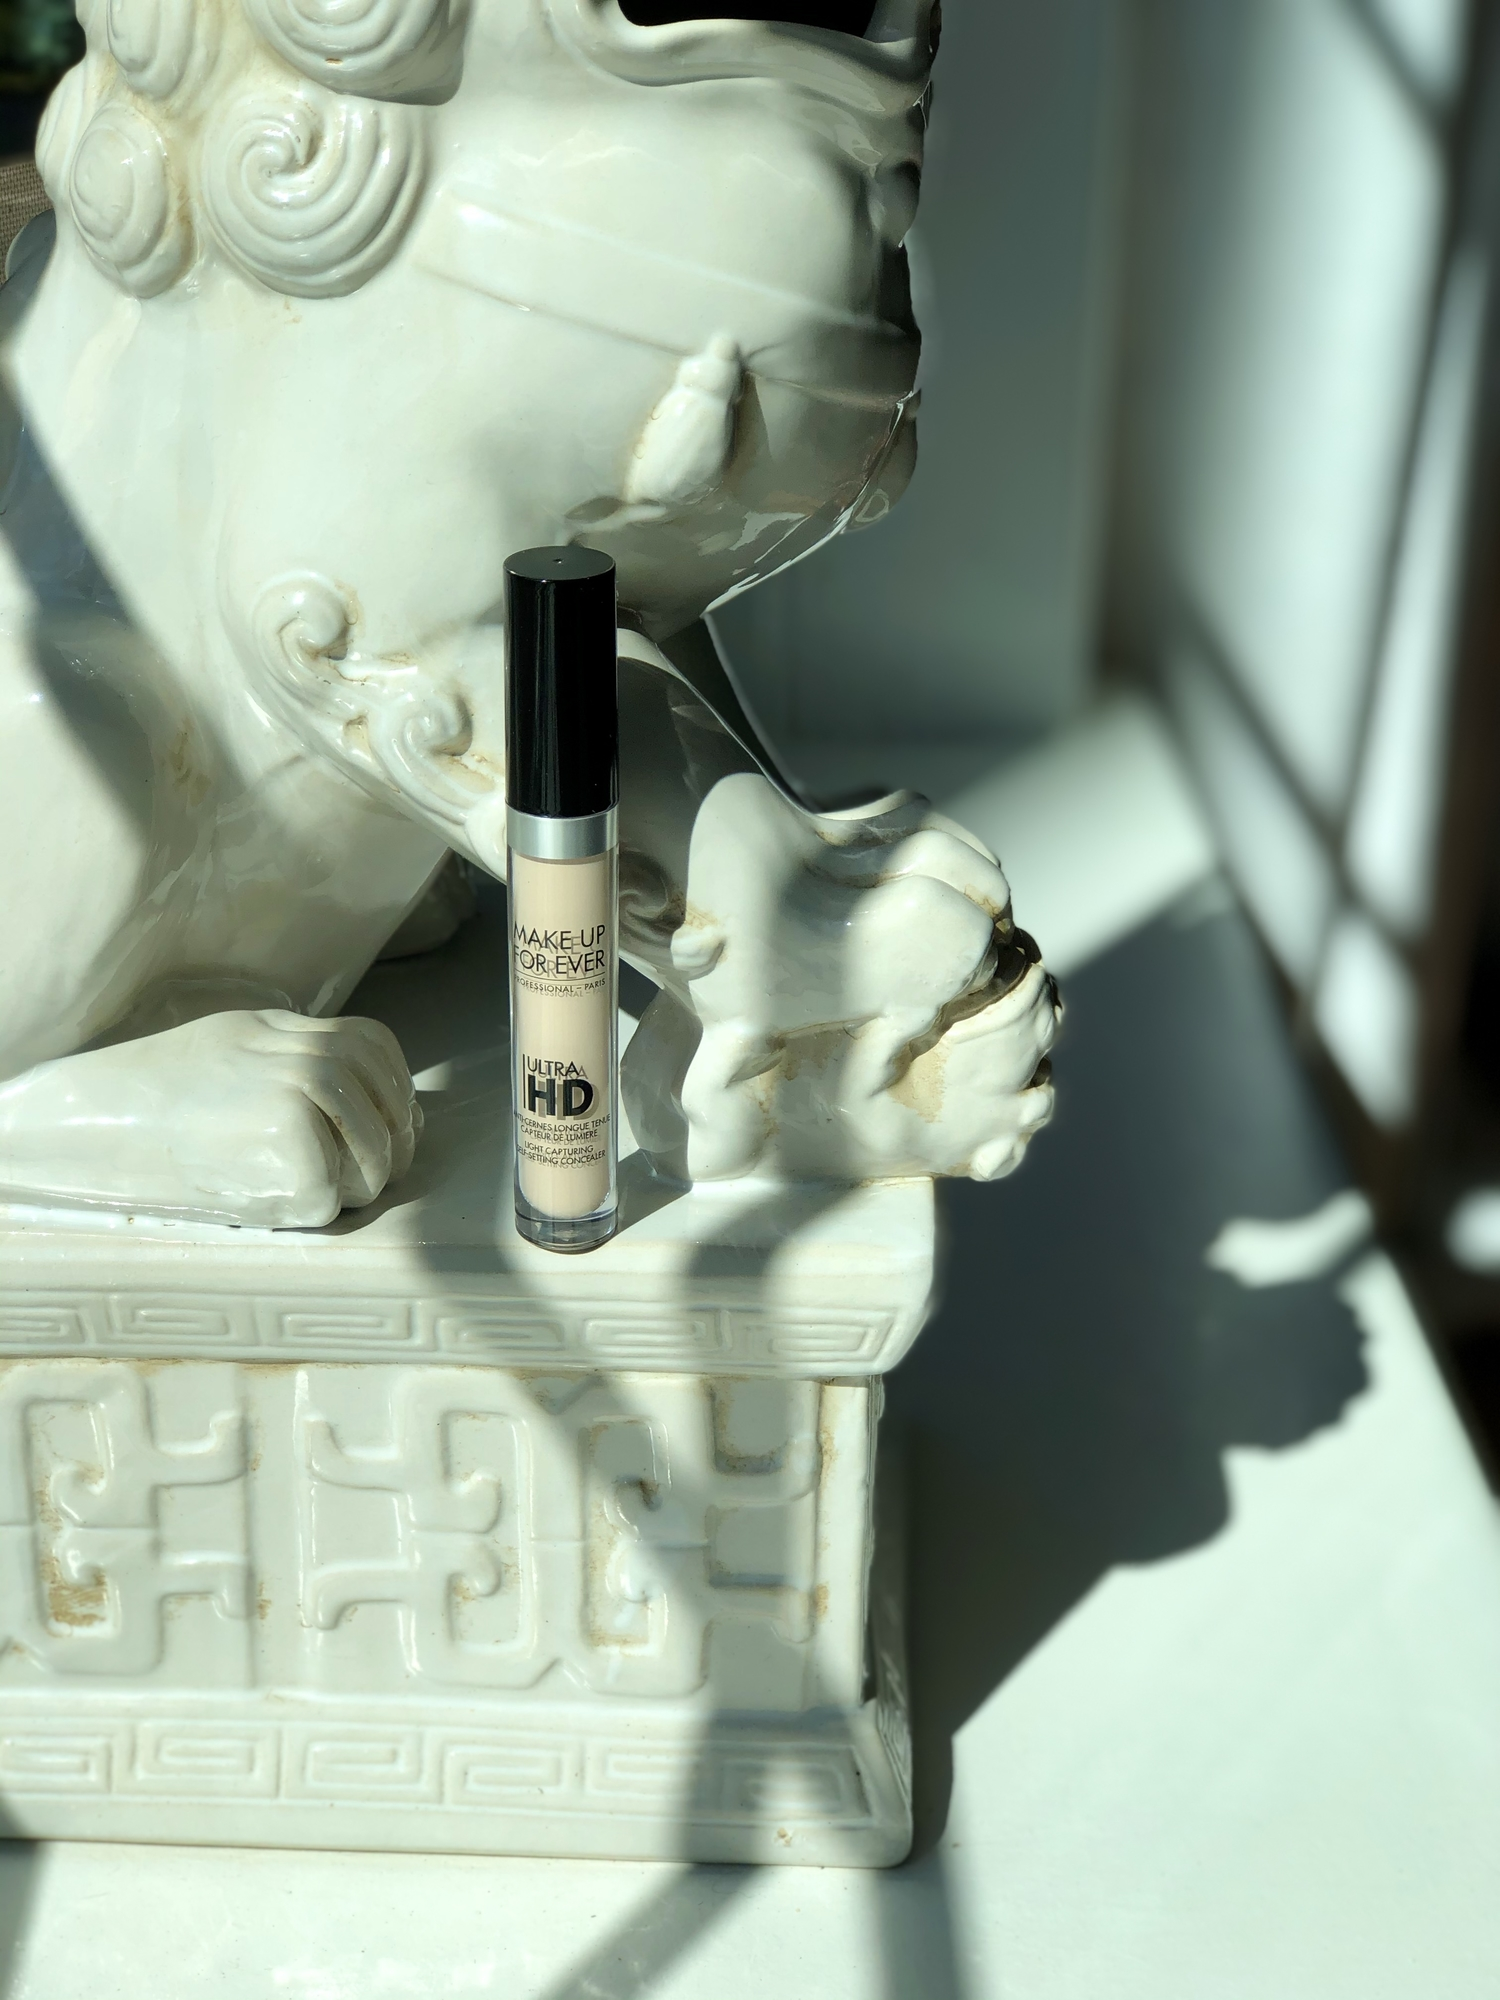 Check out my newest concealer review today!